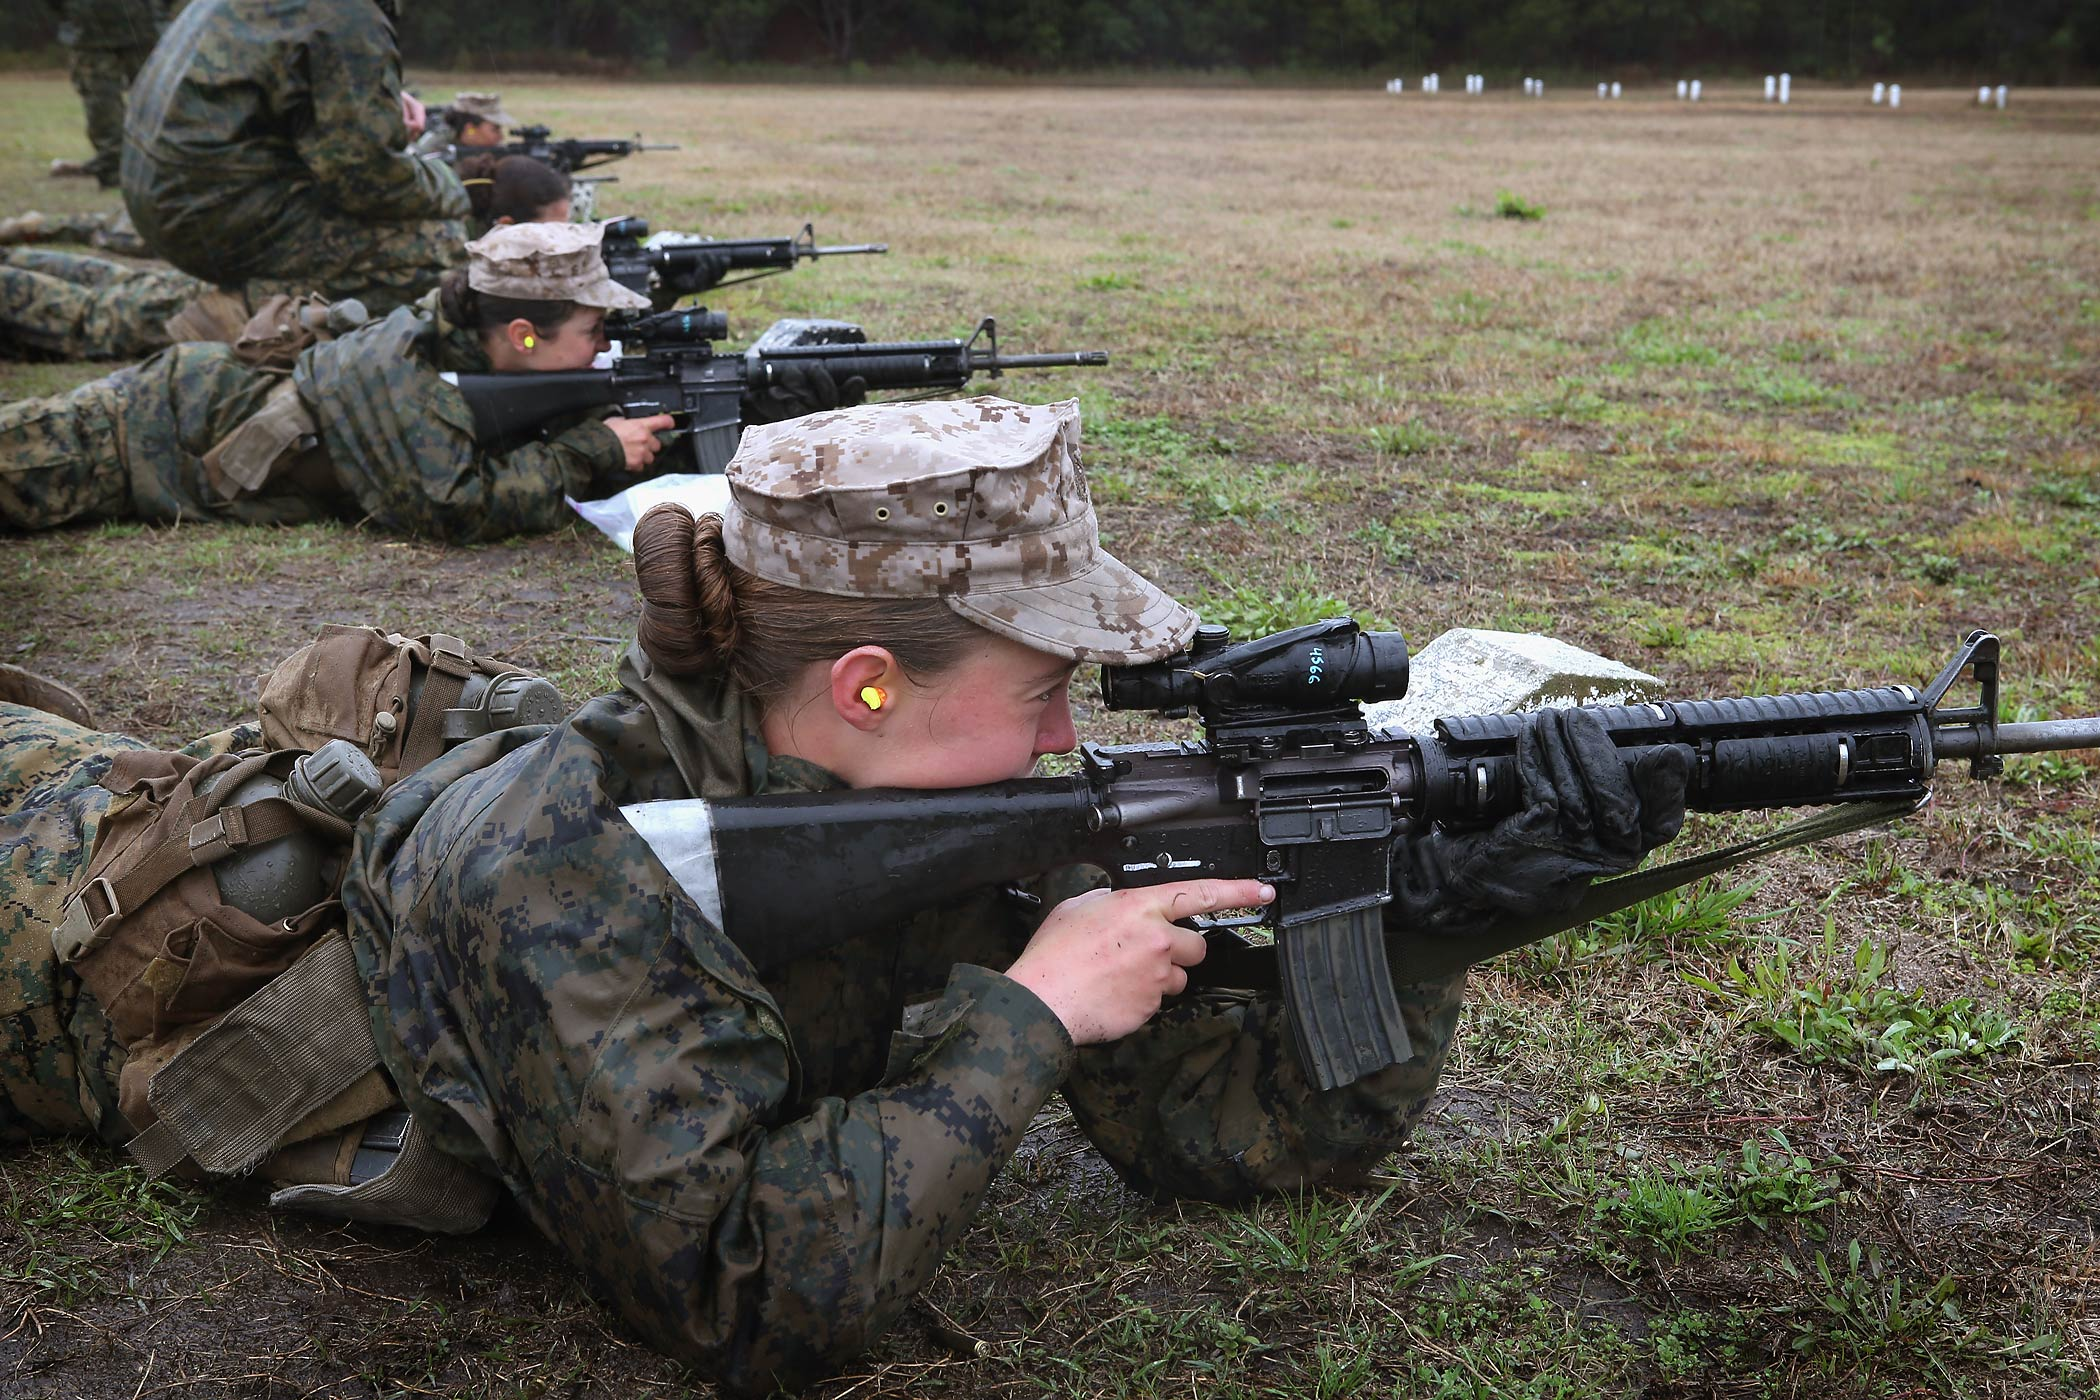 Female Marine recruits fire on the rifle range during boot camp February 25, 2013 at MCRD Parris Island, South Carolina.